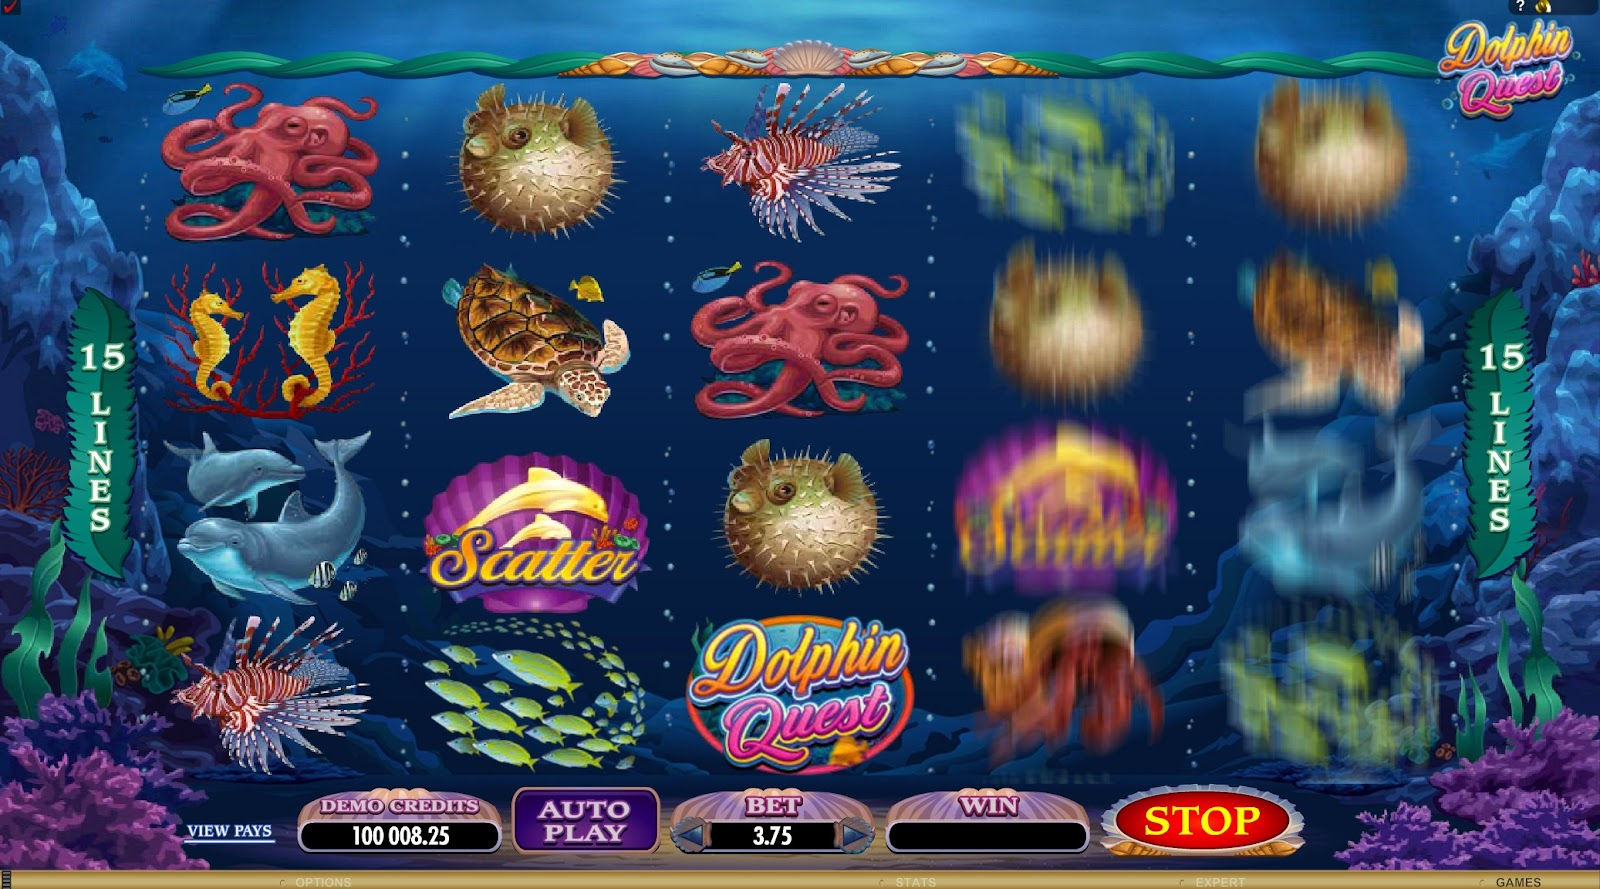 Dolphin Quest Slots Game Review